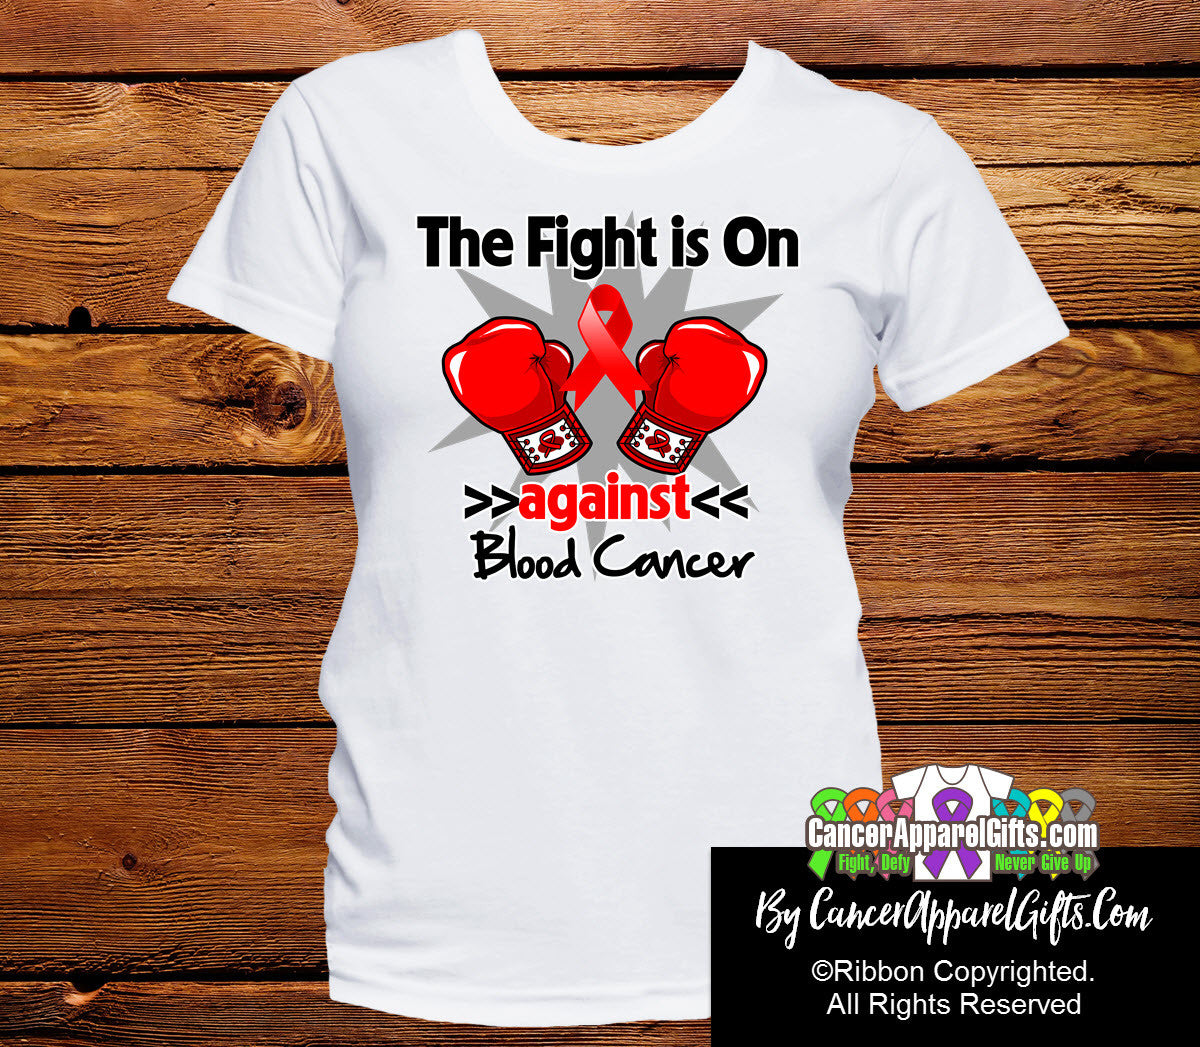 Blood Cancer The Fight is On Ladies Shirts